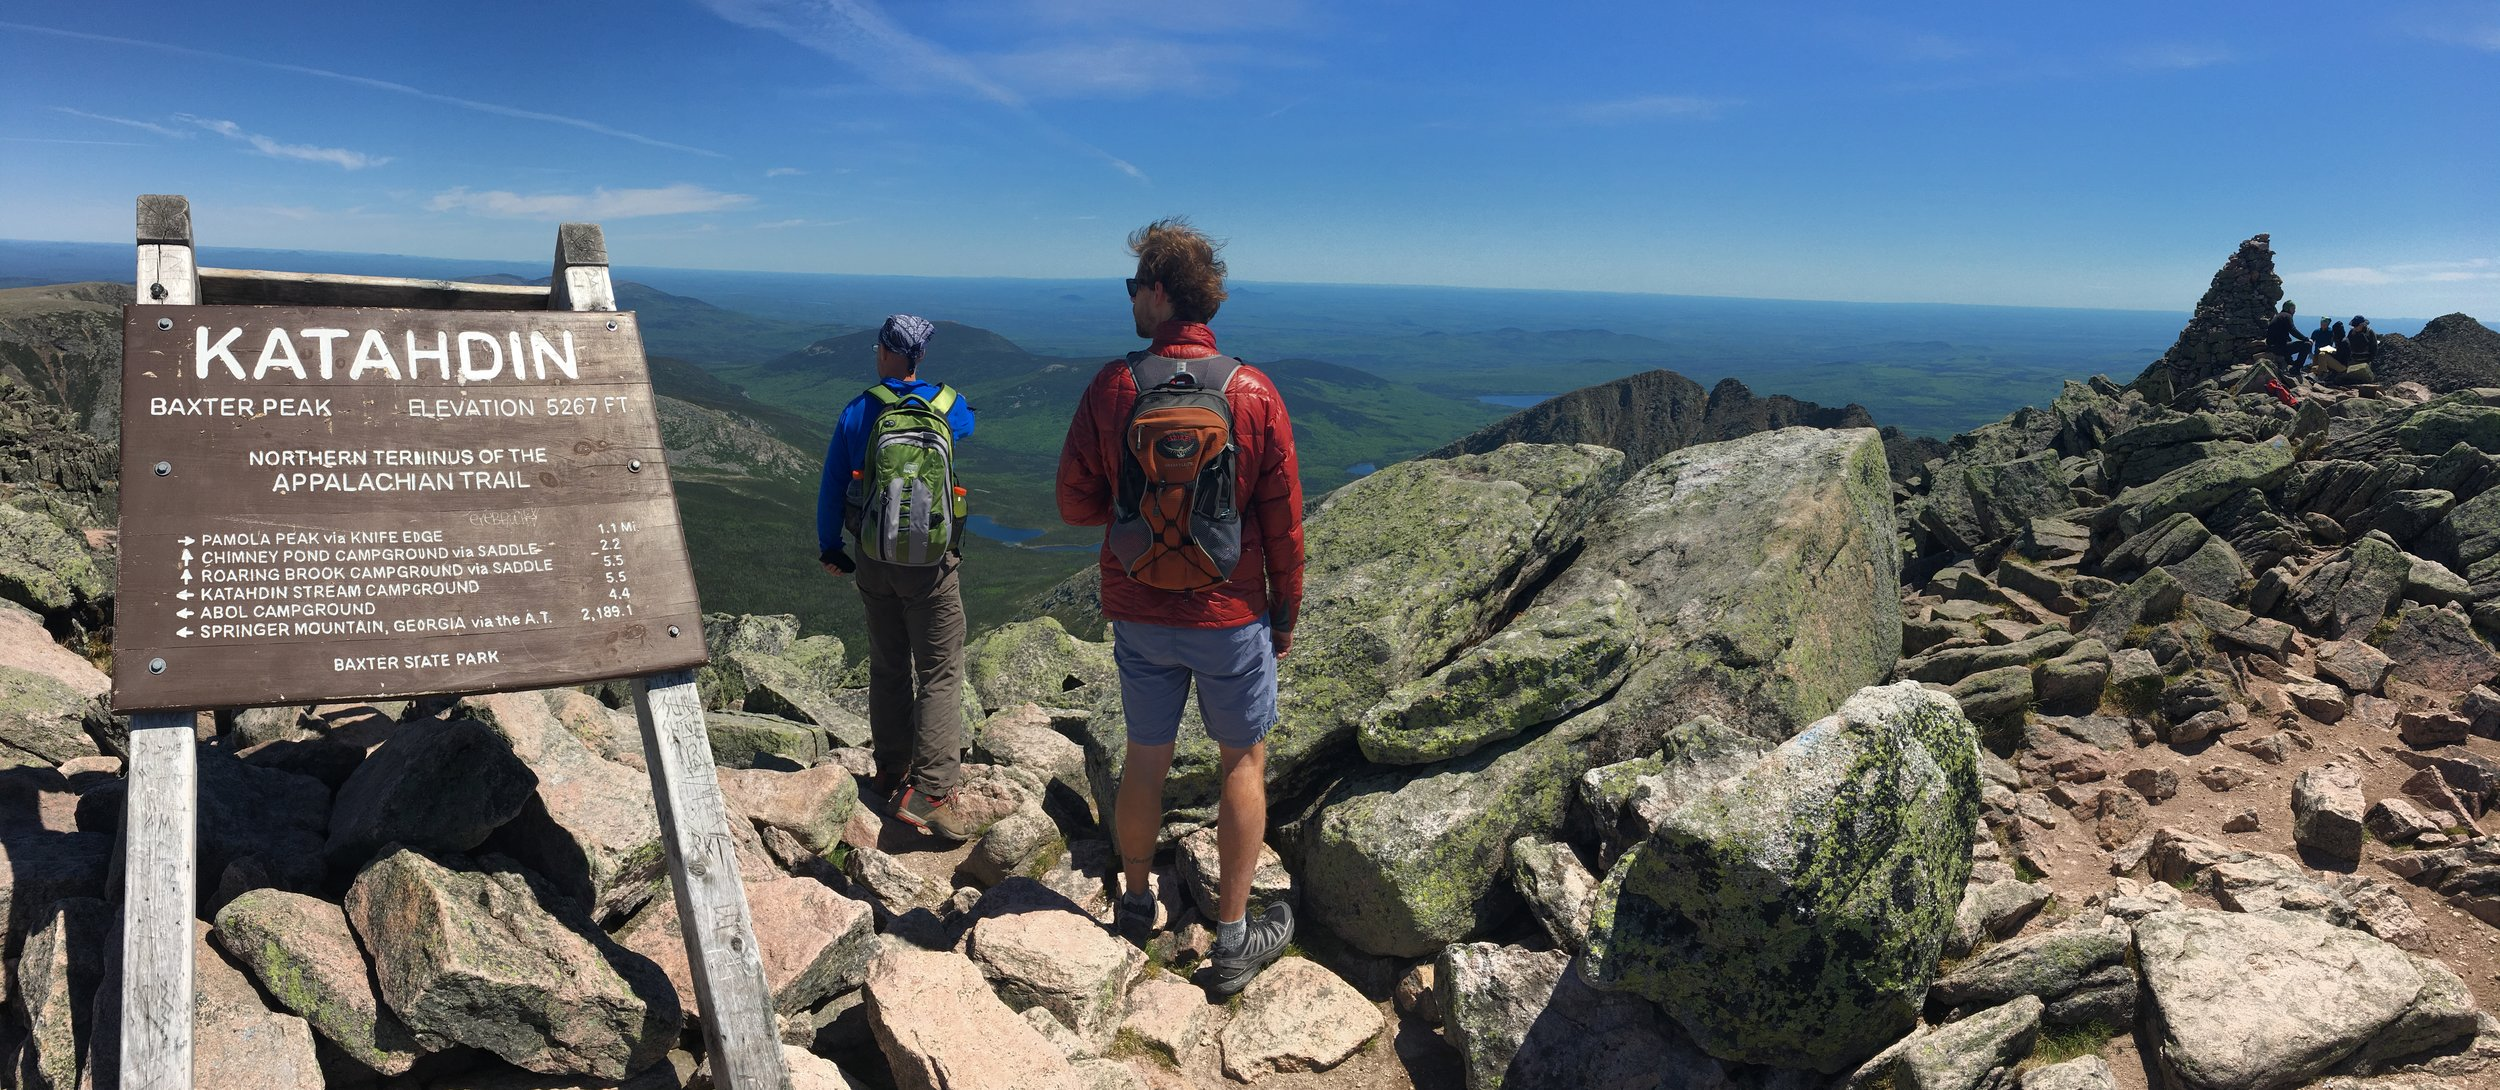 Top of Mt. Katahdin in Maine  - BRUTAL hike (brevity to describe a hike is better we think!)